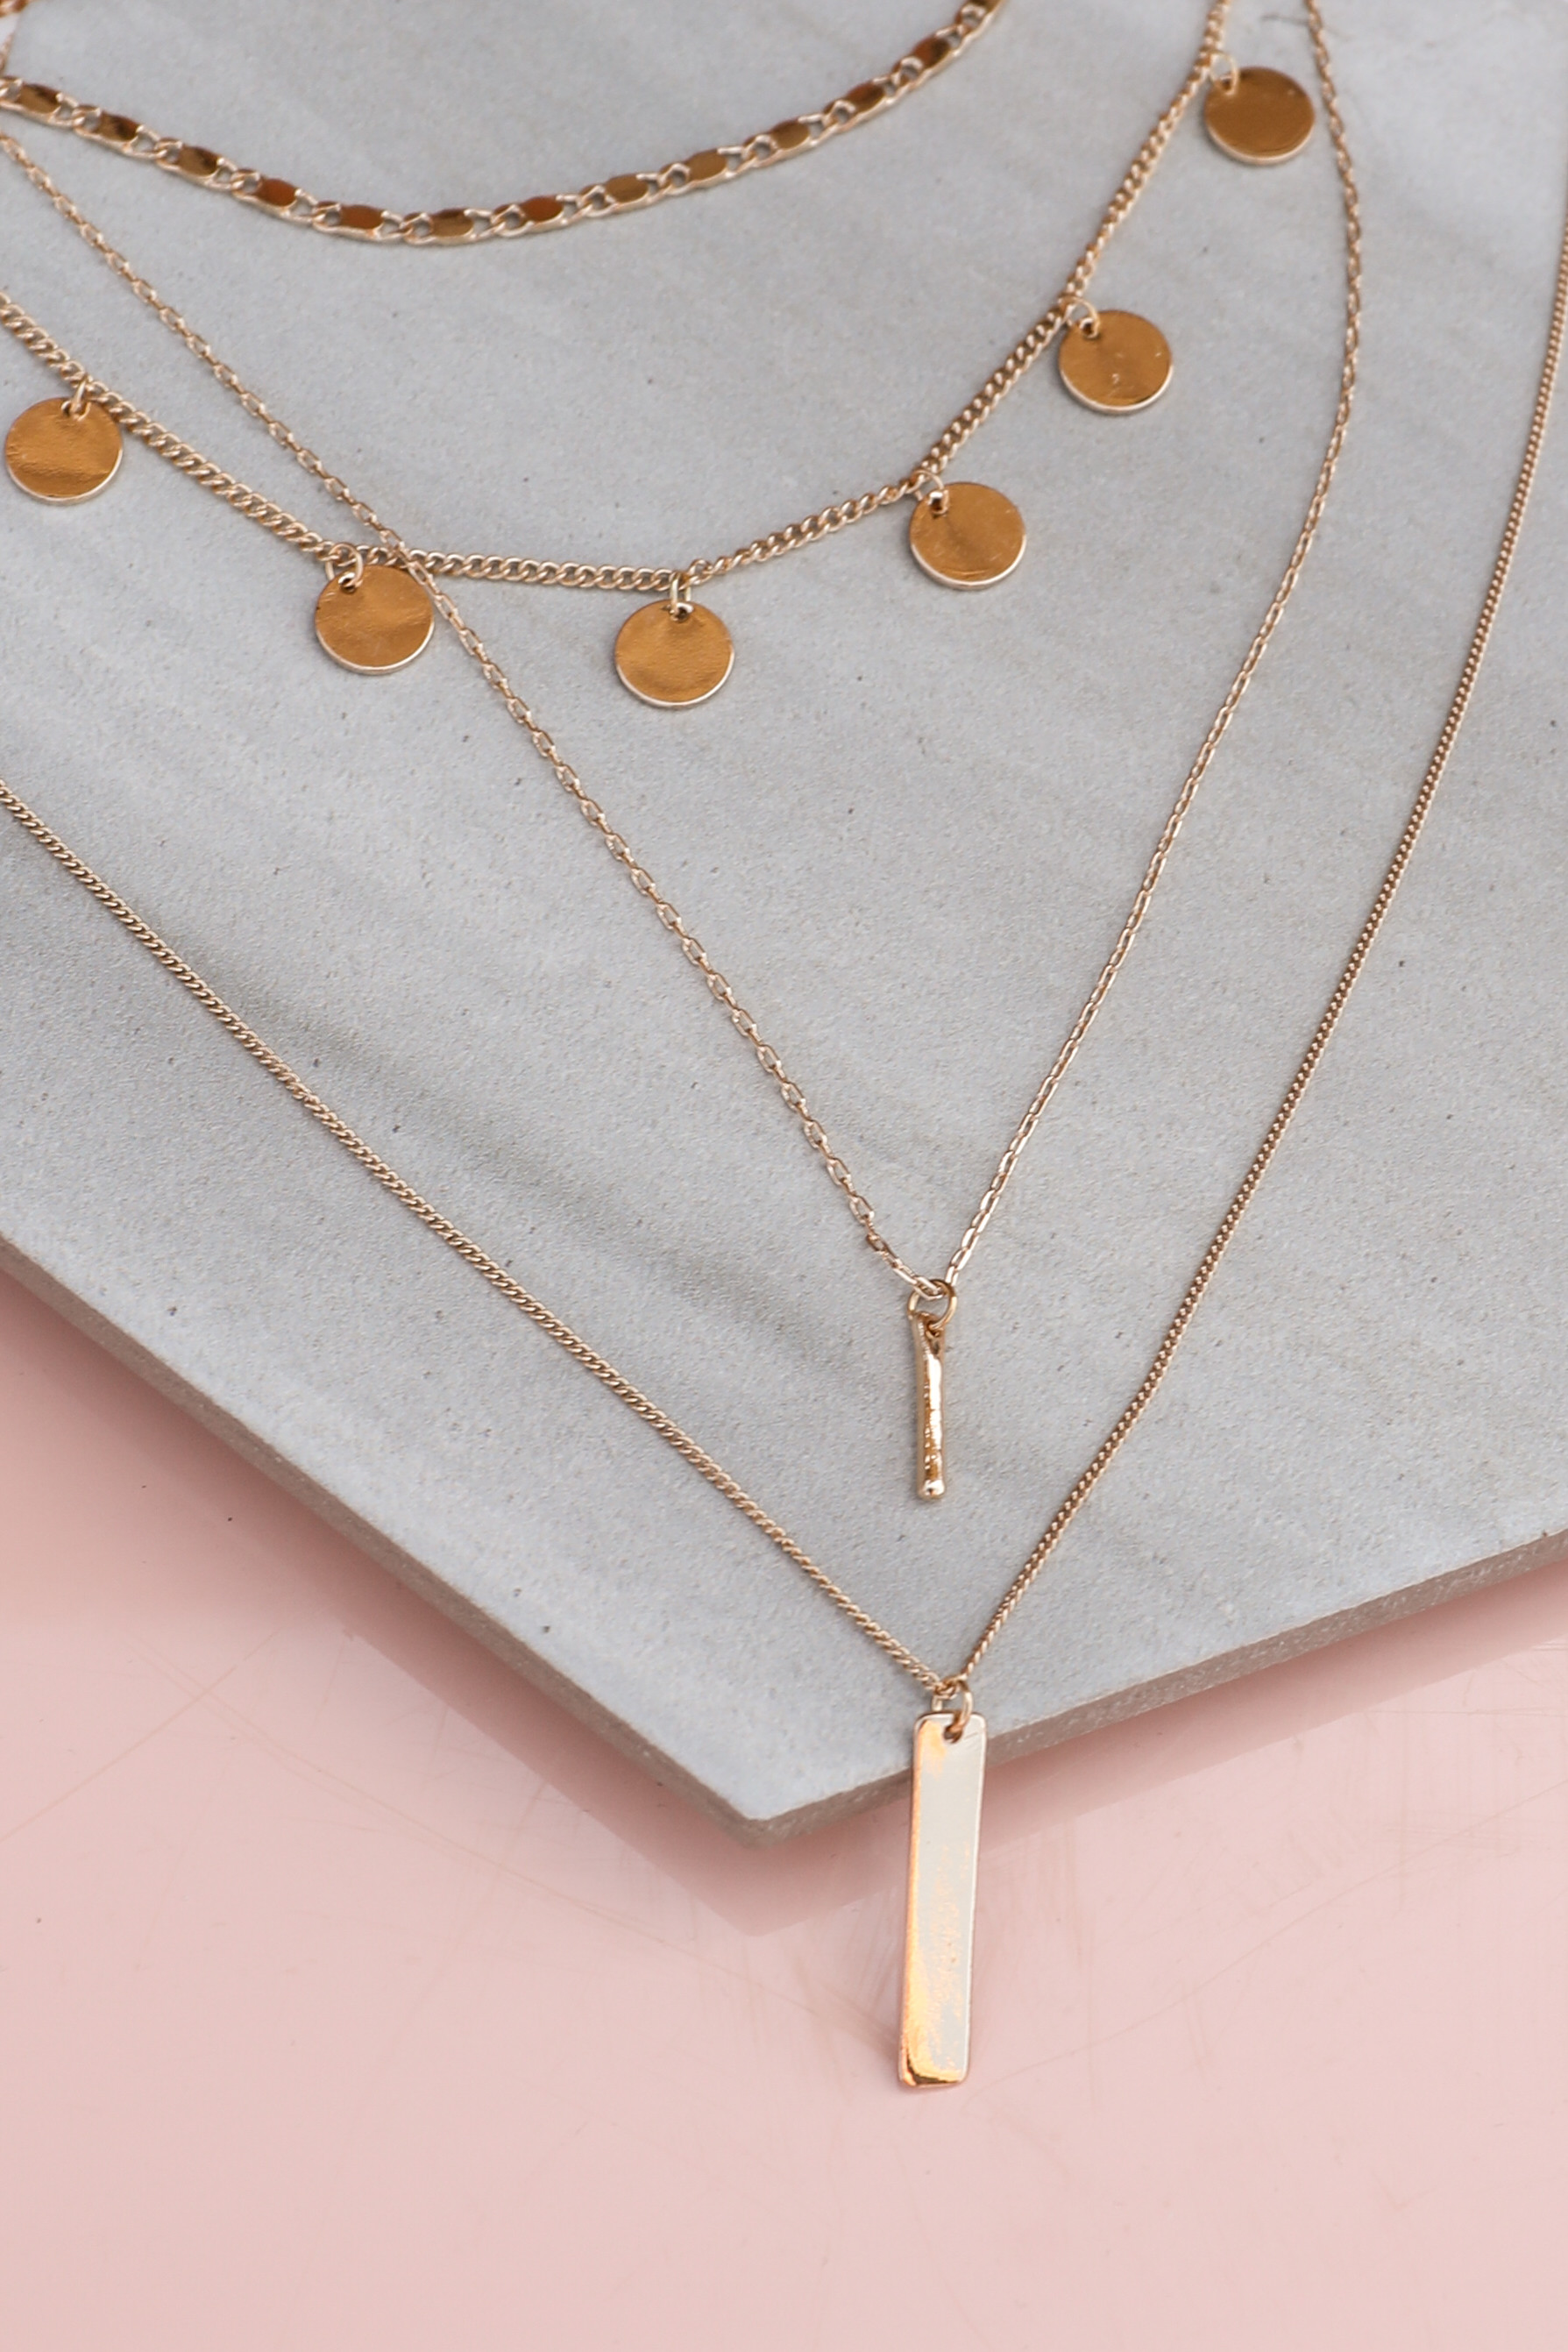 Gold Layered Necklace Set with Coin Details and Bar Pendants